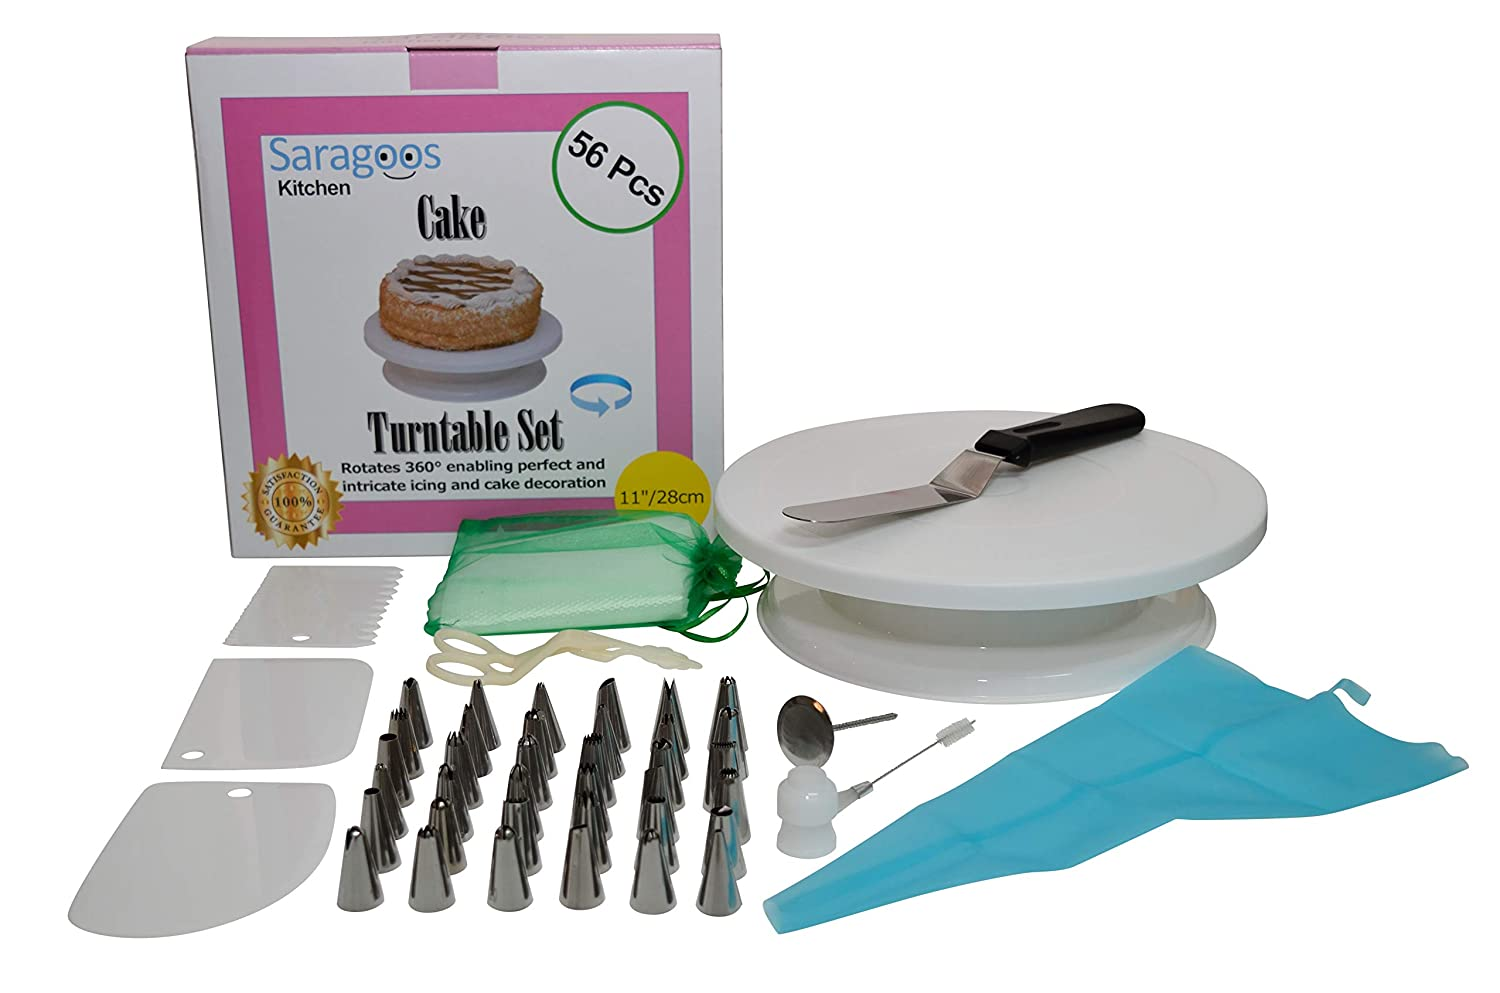 56 pcs Cake Decorating Supplies Turntable Set, with 11'' Smooth Rotating Turntable Stand, 36 stainless steel numbered tips, Pastry Bag, 10 Disposable Bags, BONUS - 3 Cake Scraper and Icing Spatula Saragoos